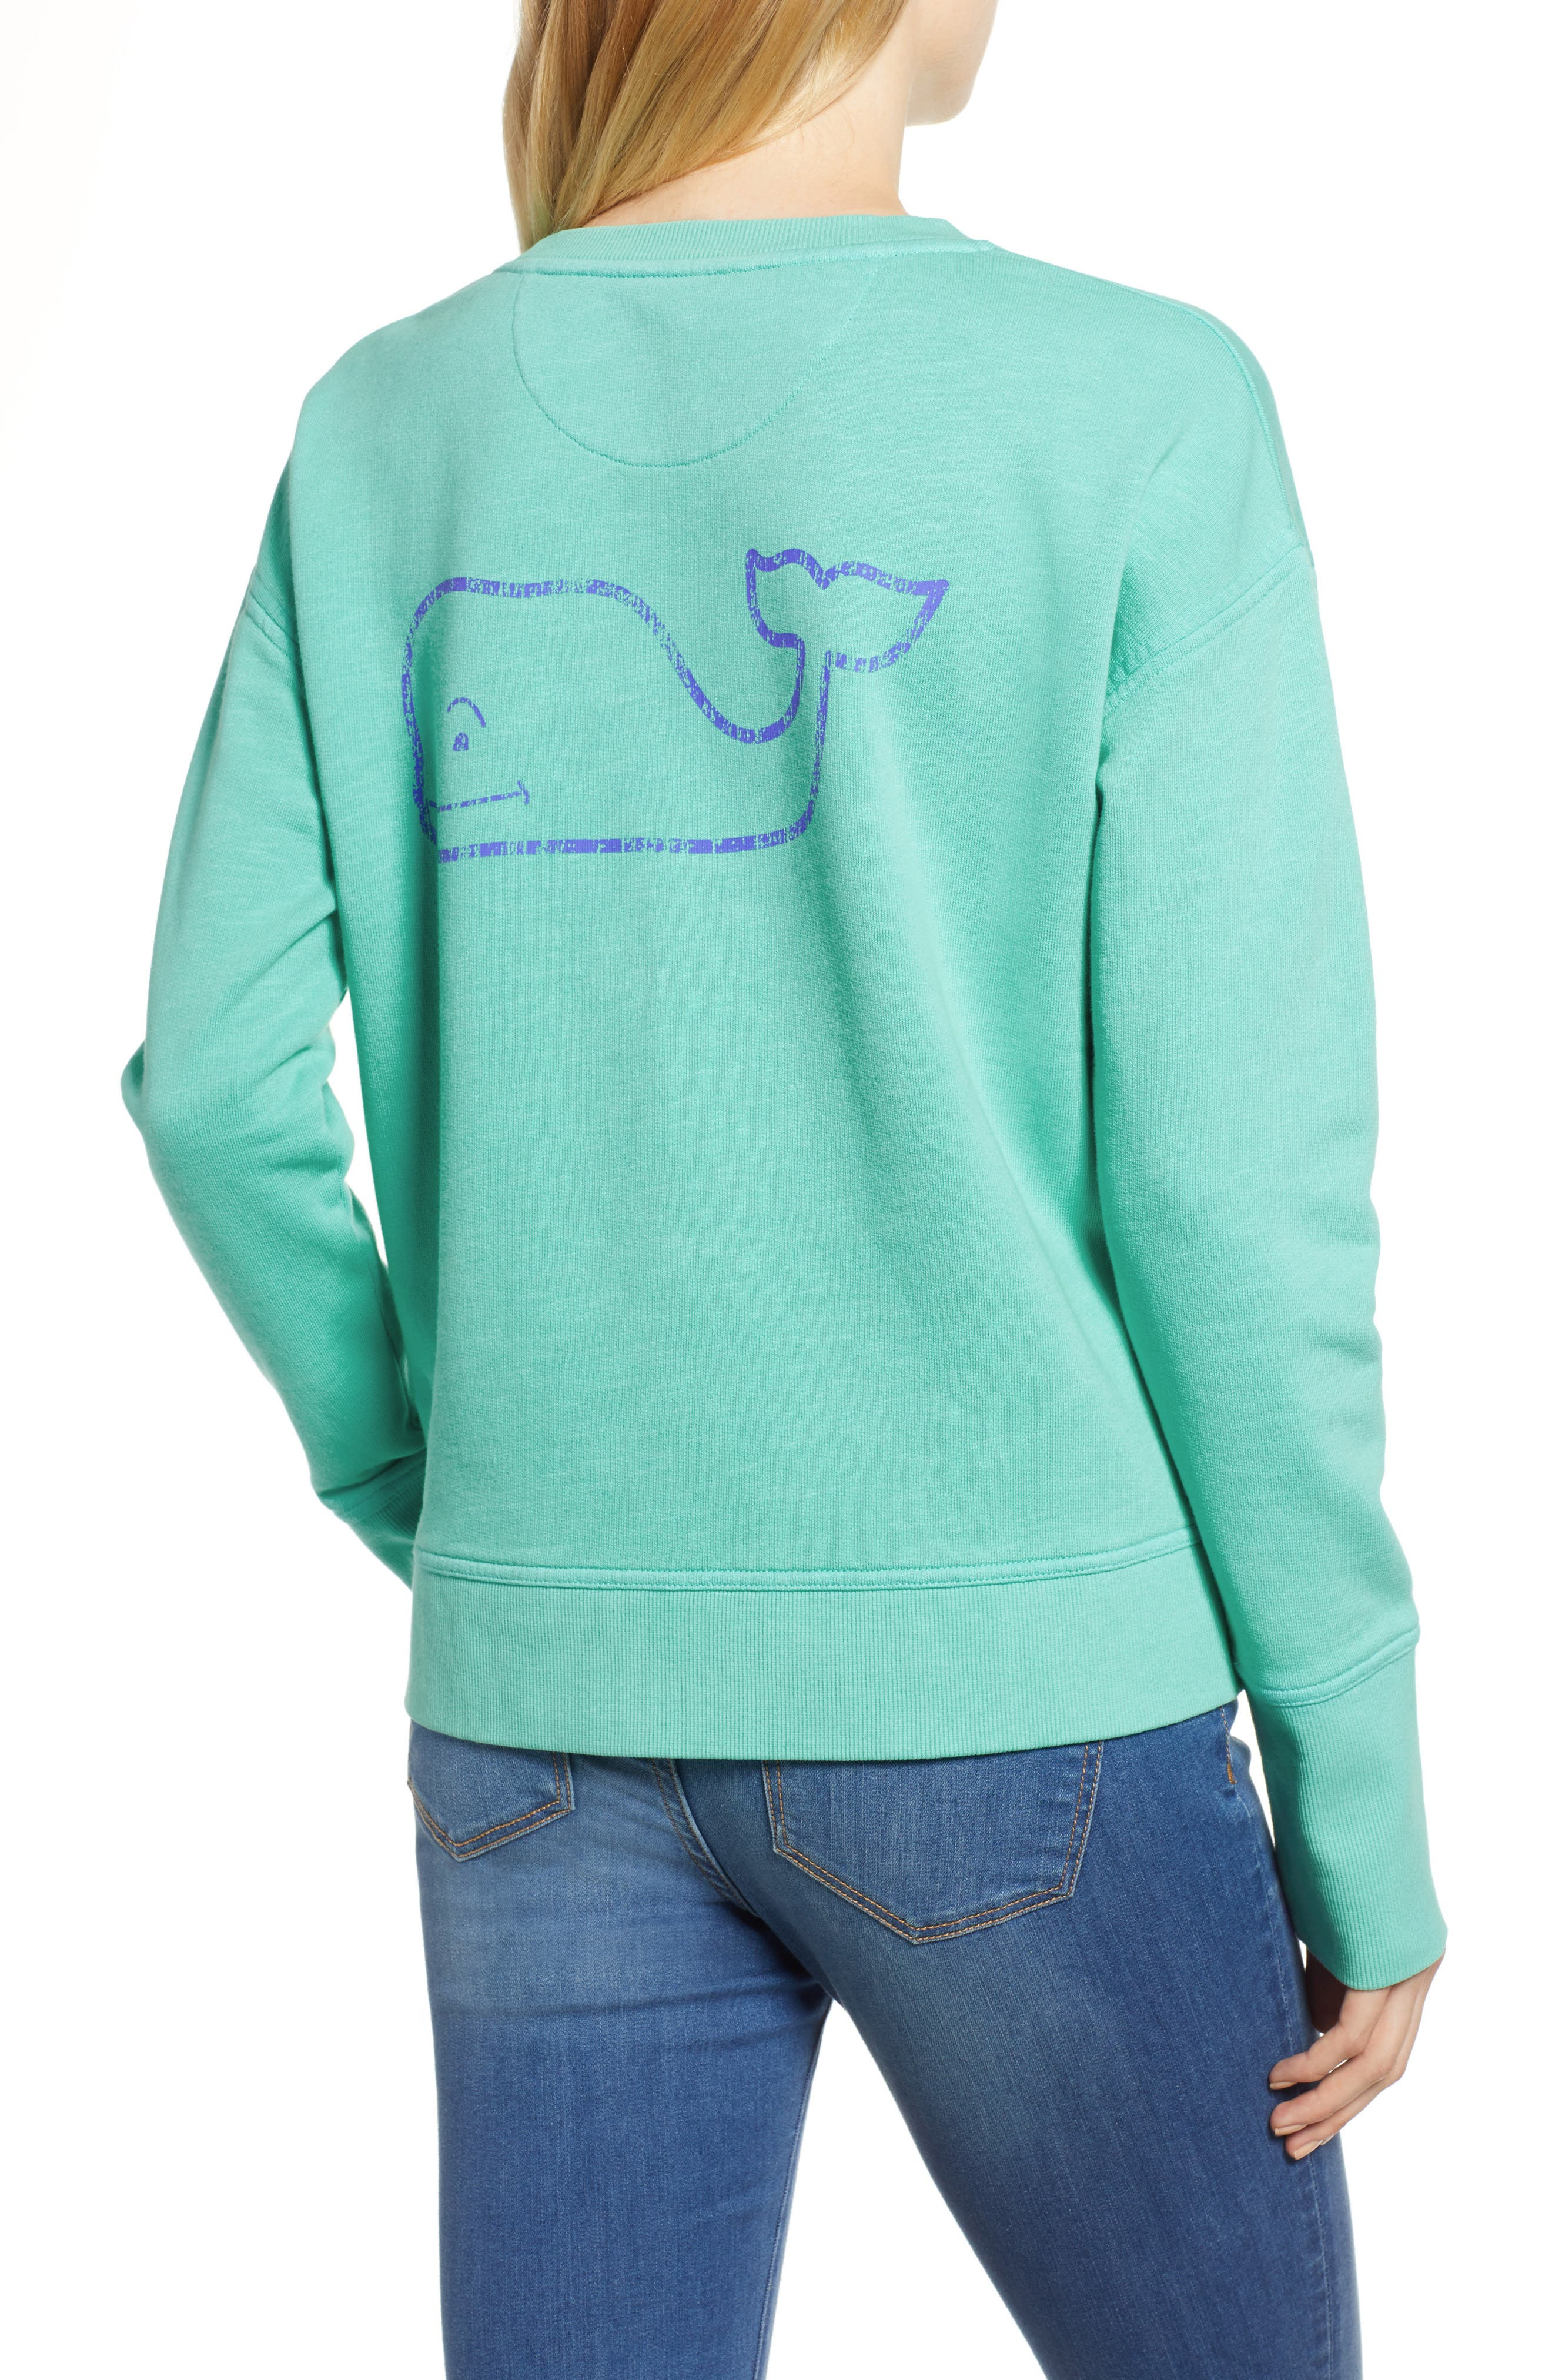 Garment Dyed Vintage Whale Long Sleeve Cotton Tee,                             Alternate thumbnail 2, color,                             464